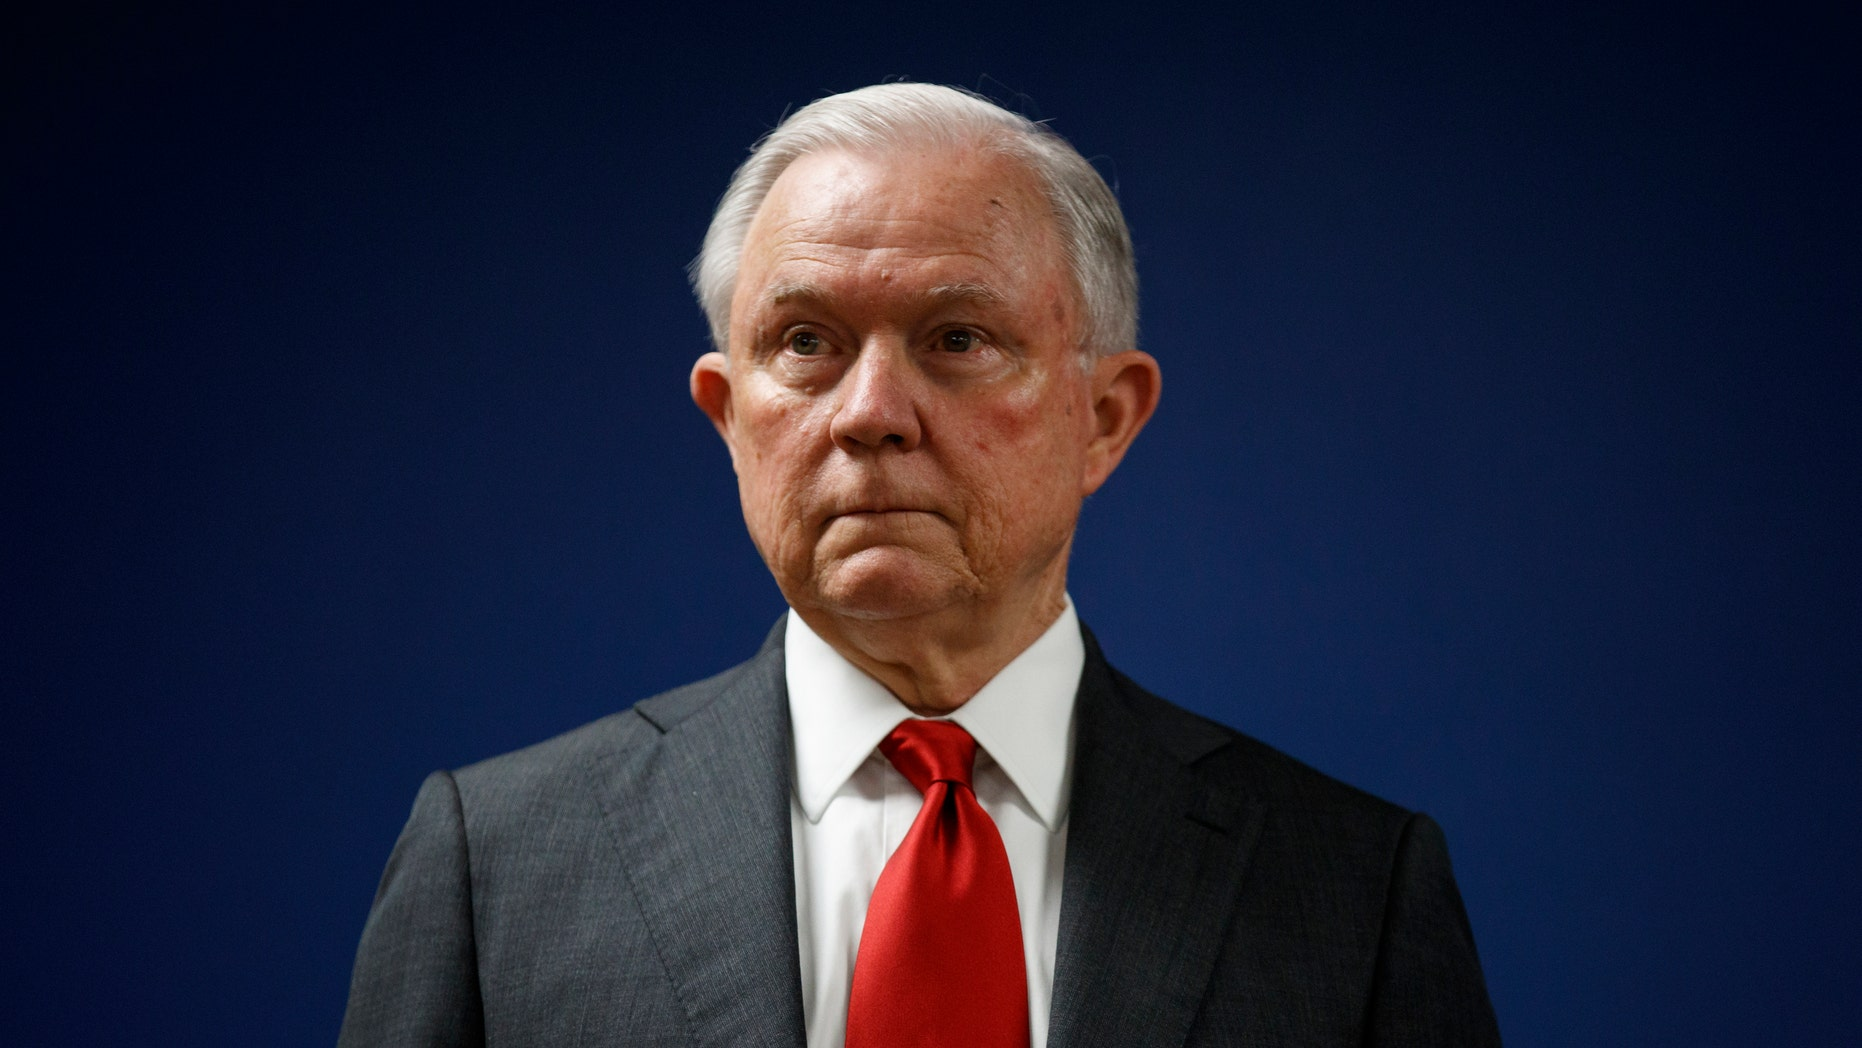 In this Oct. 15, 2018, Attorney General Jeff Sessions pauses during a news conference at the U.S. Attorney's Office for the District of Columbia. (AP Photo/Carolyn Kaster, File)